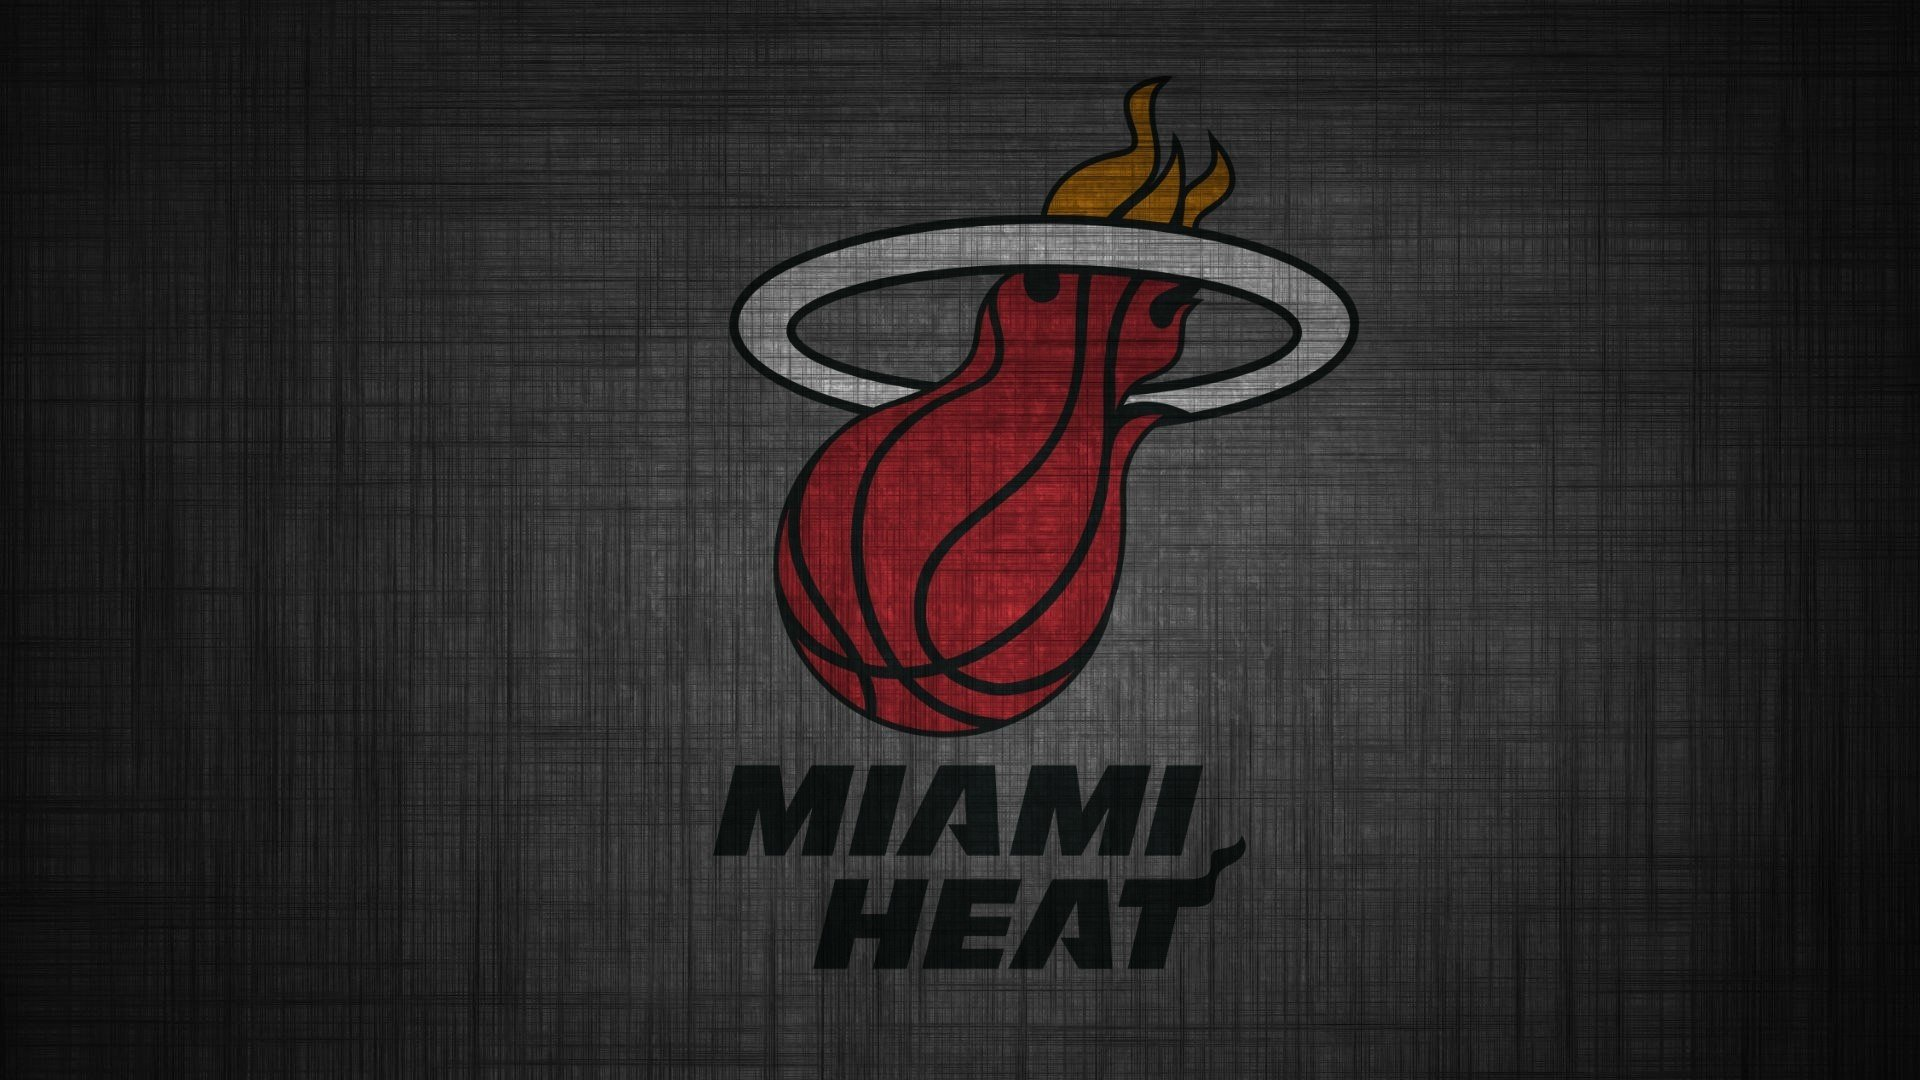 Miami Heat Wallpaper 2018 HD 61 images 1920x1080